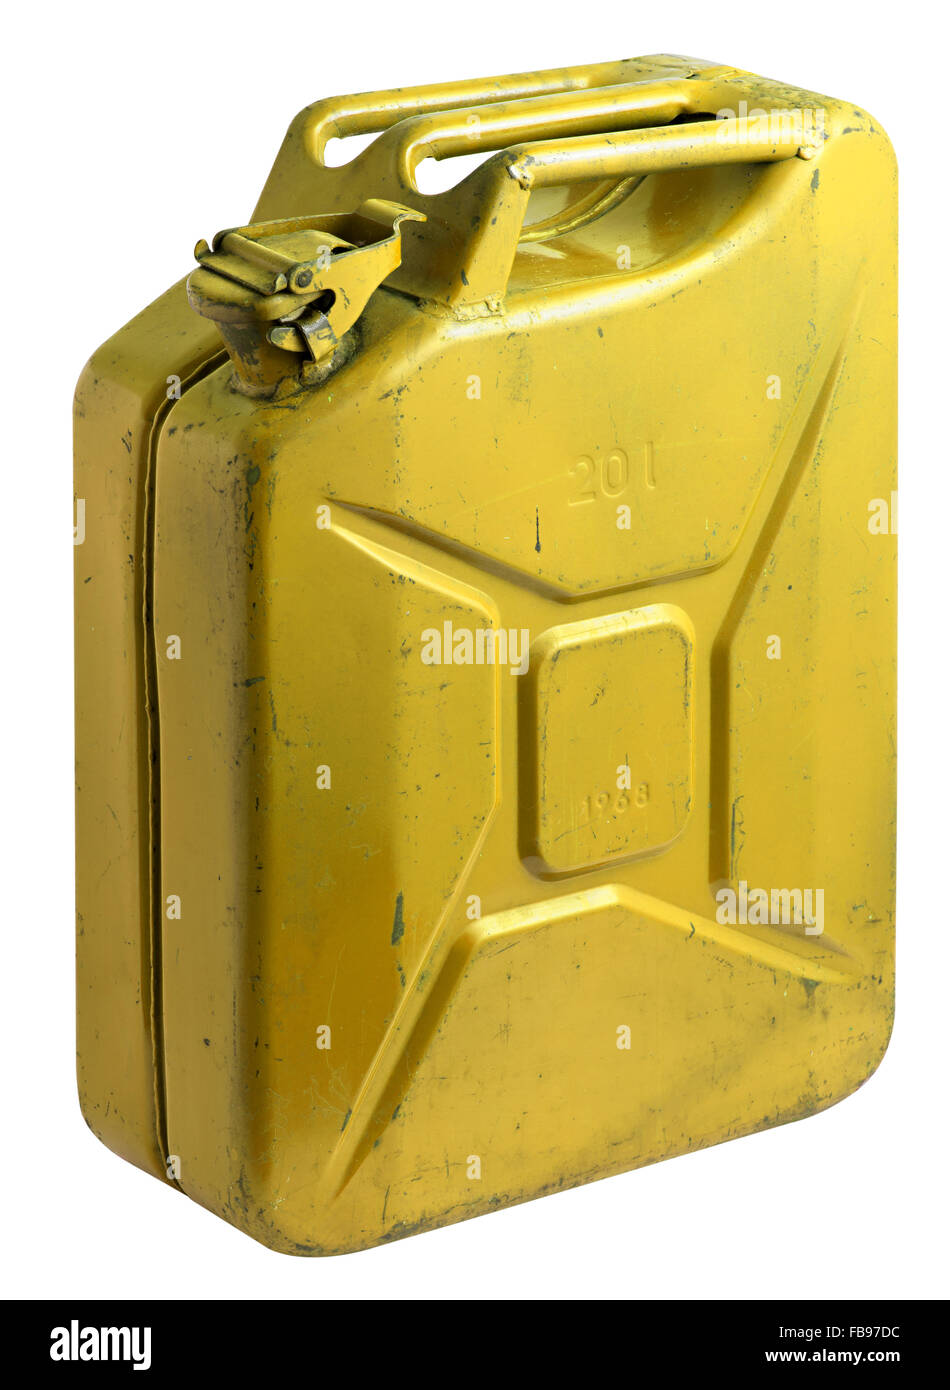 Dirty old used yellow fuel tank with the cap closed isolated at an angle on a white background - Stock Image